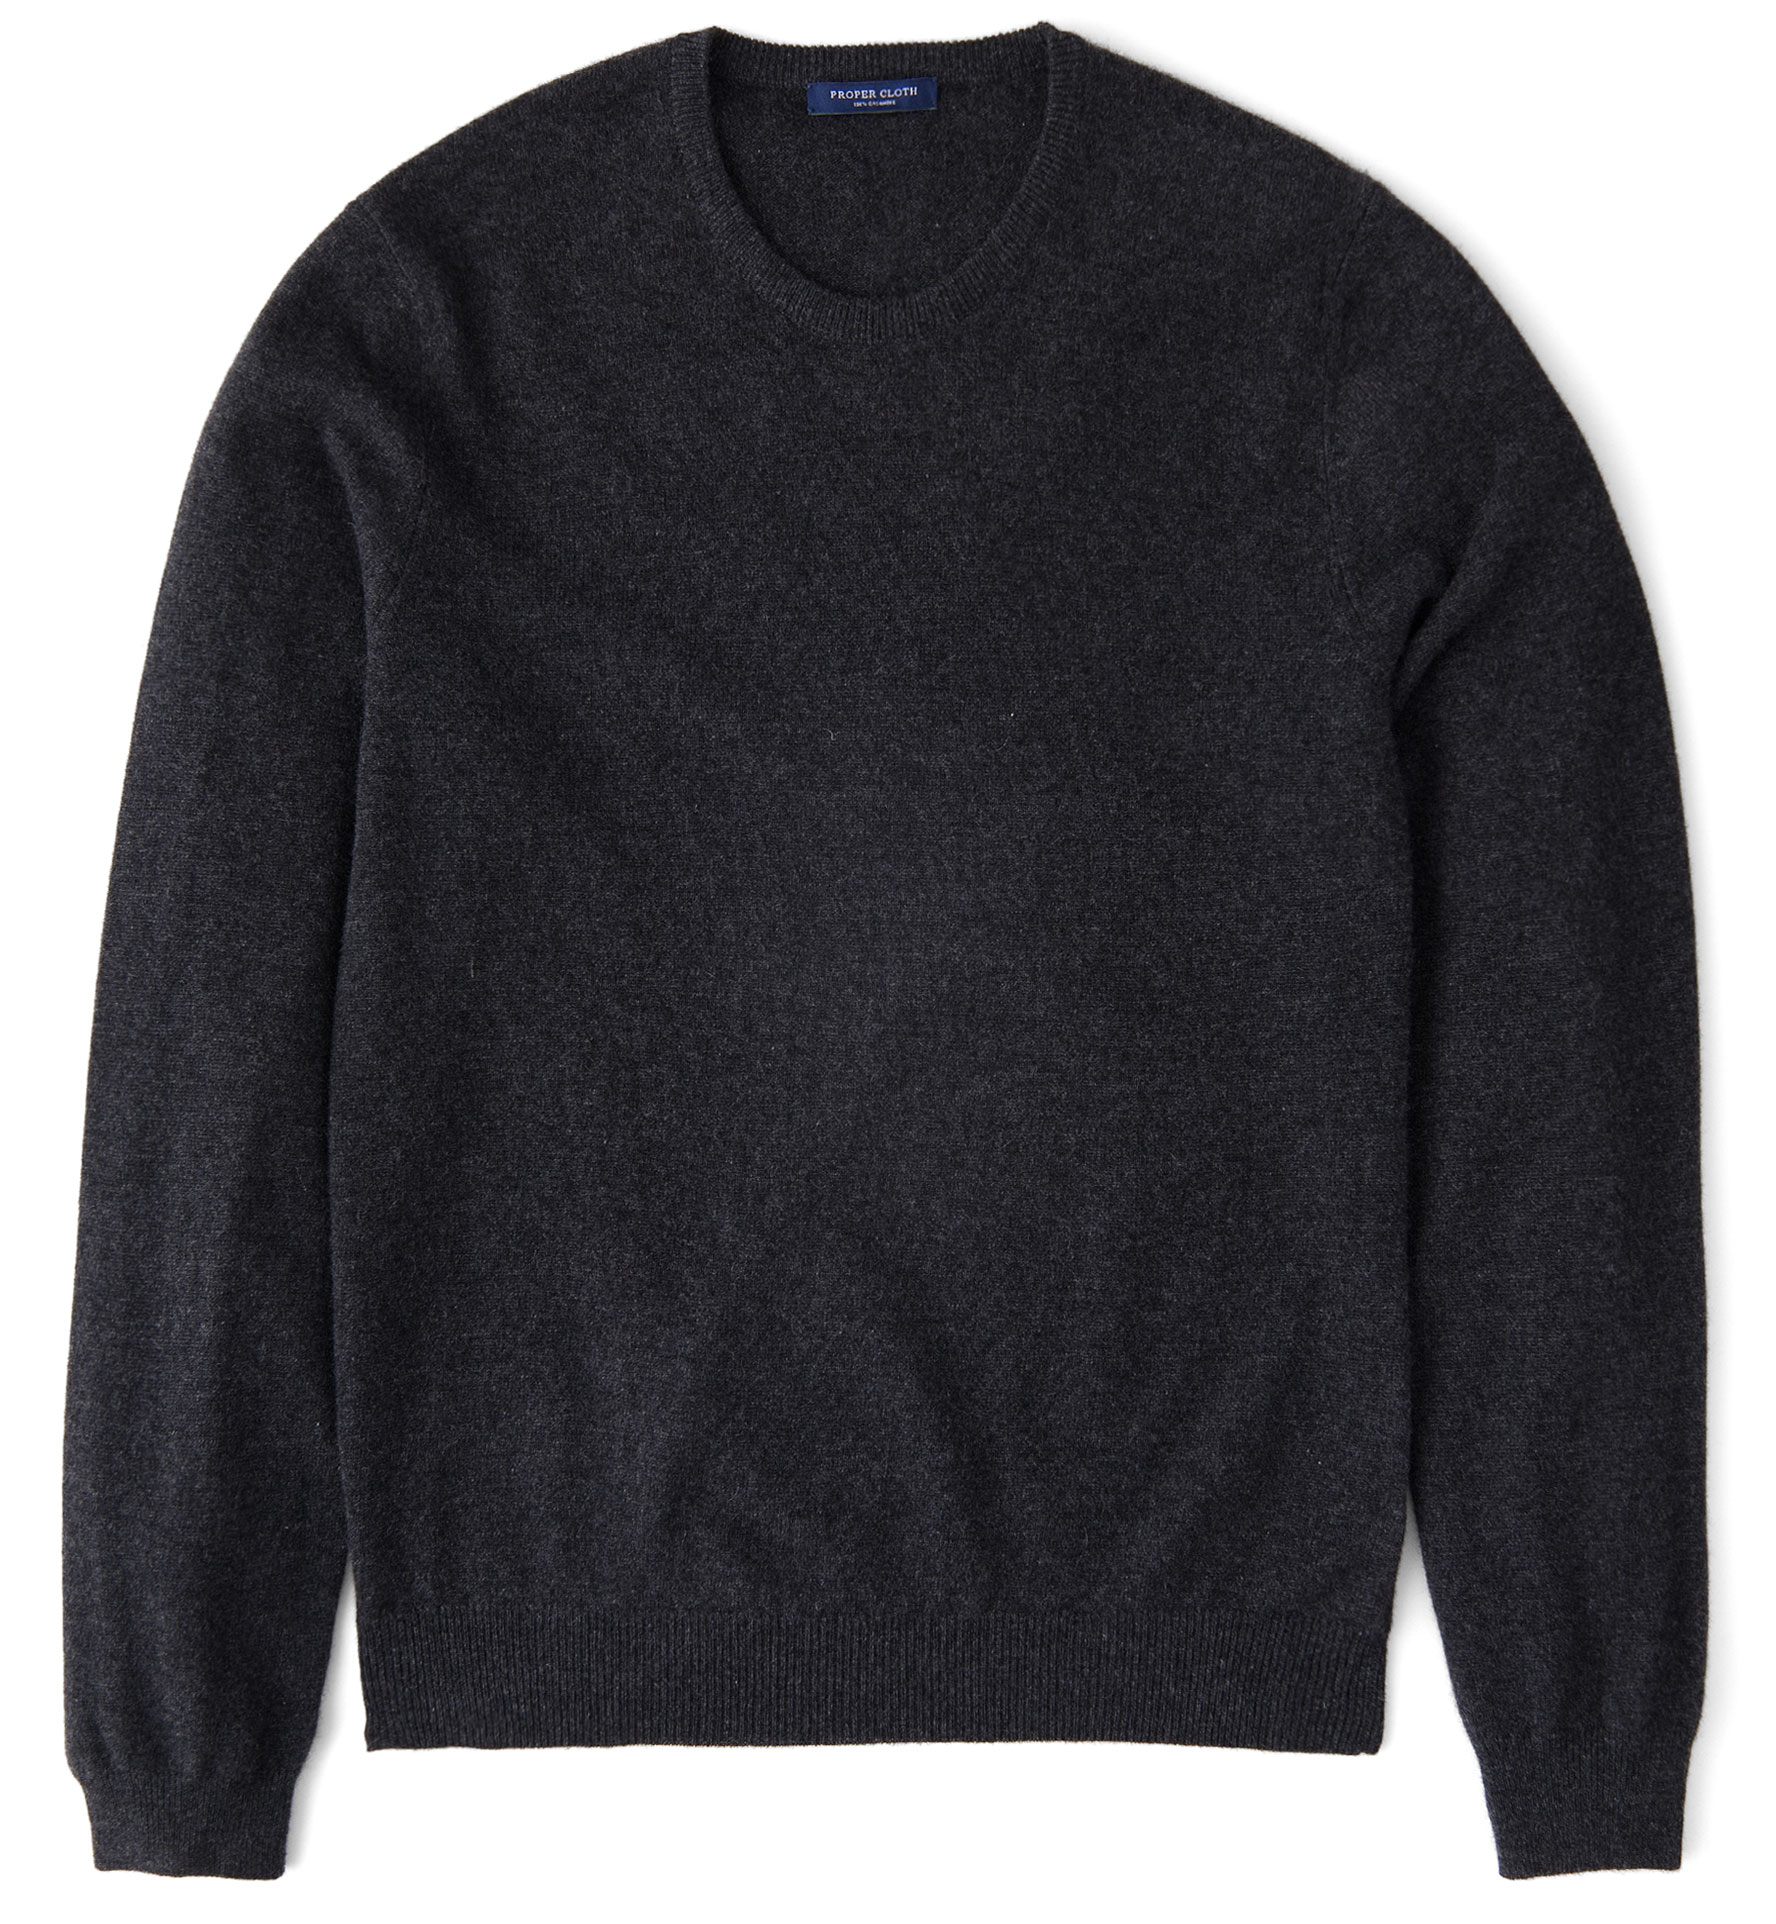 Zoom Image of Charcoal Cashmere Crewneck Sweater